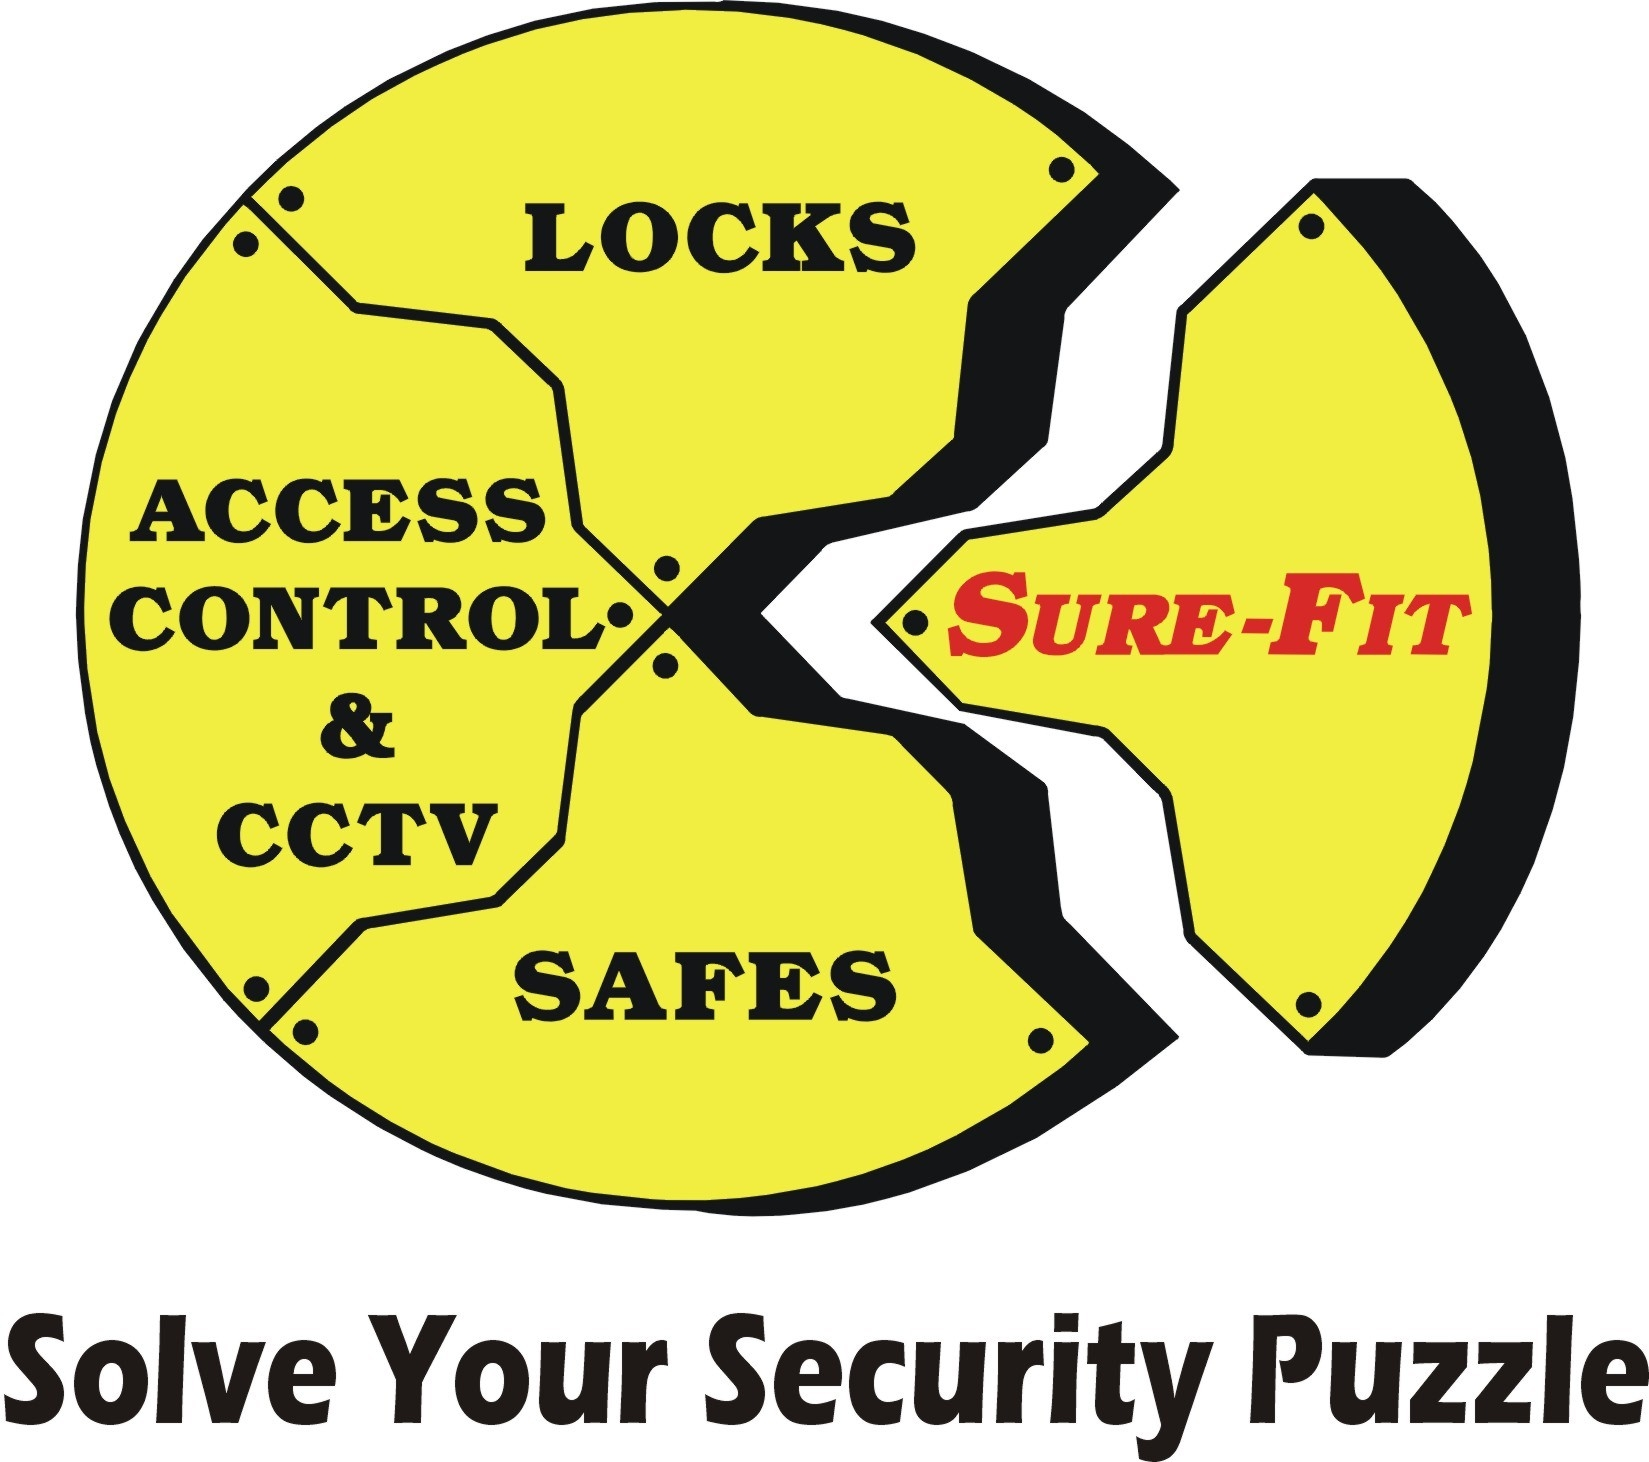 Sure-Fit Security